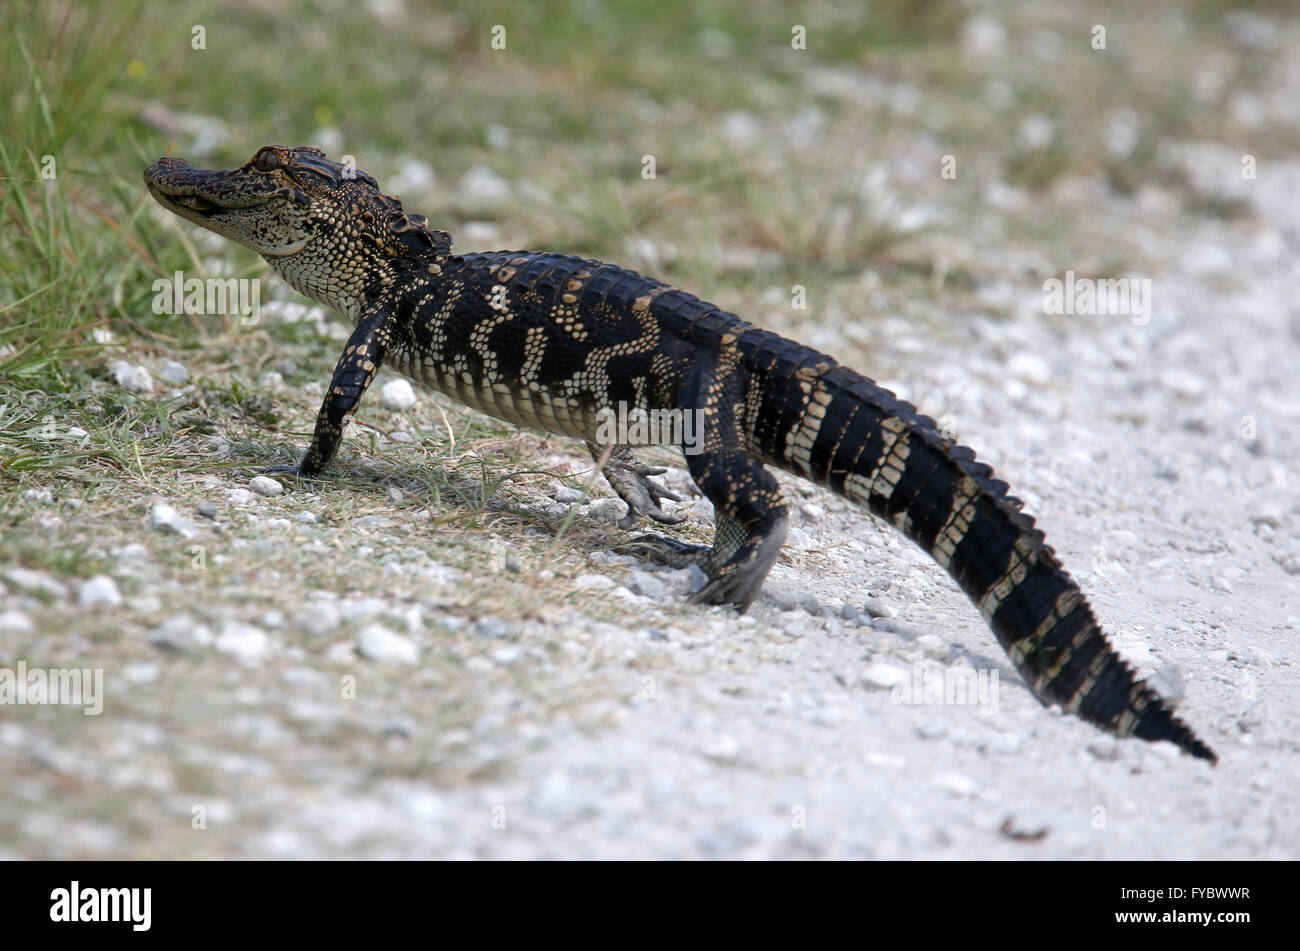 Young alligator crossing the trail path just in front of me!  twas approx 1.5m or 5ft long. April 2016 Stock Photo